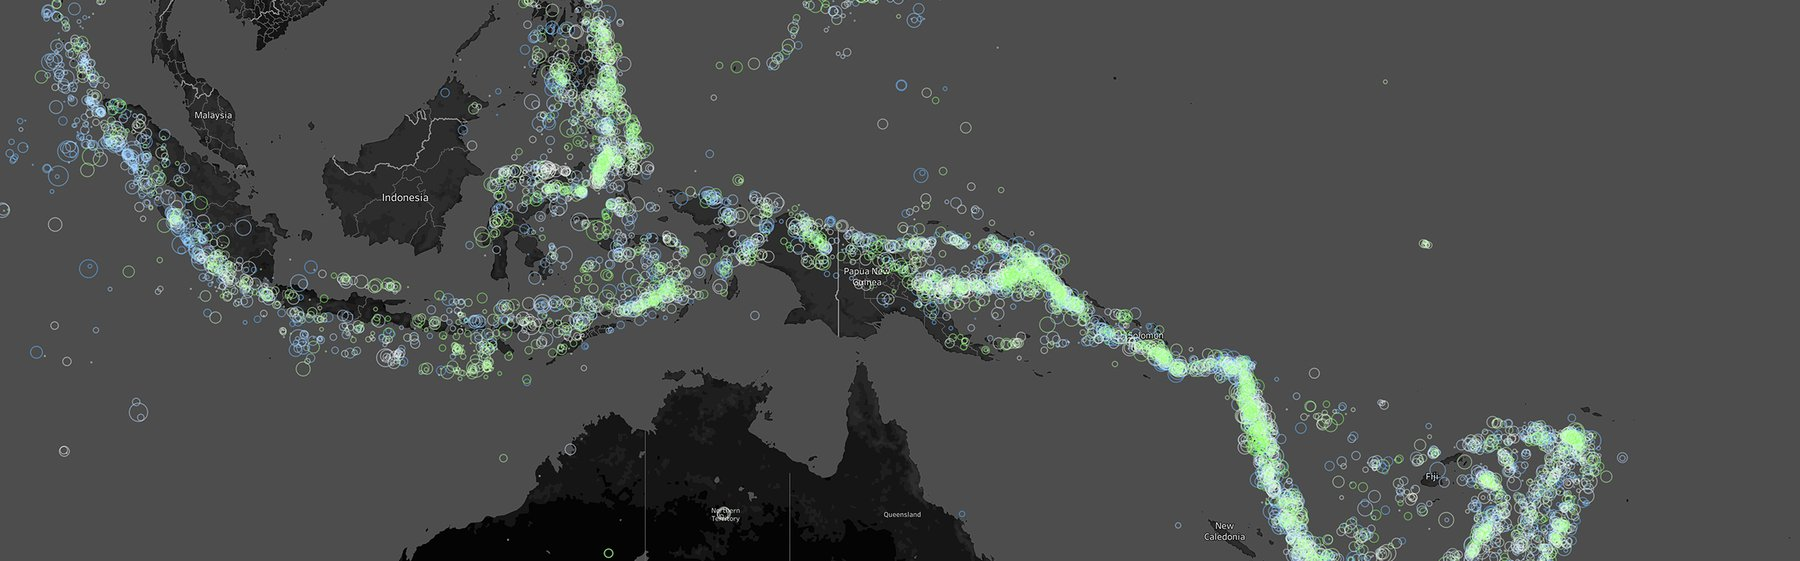 tableau_earthquakes_map.jpg